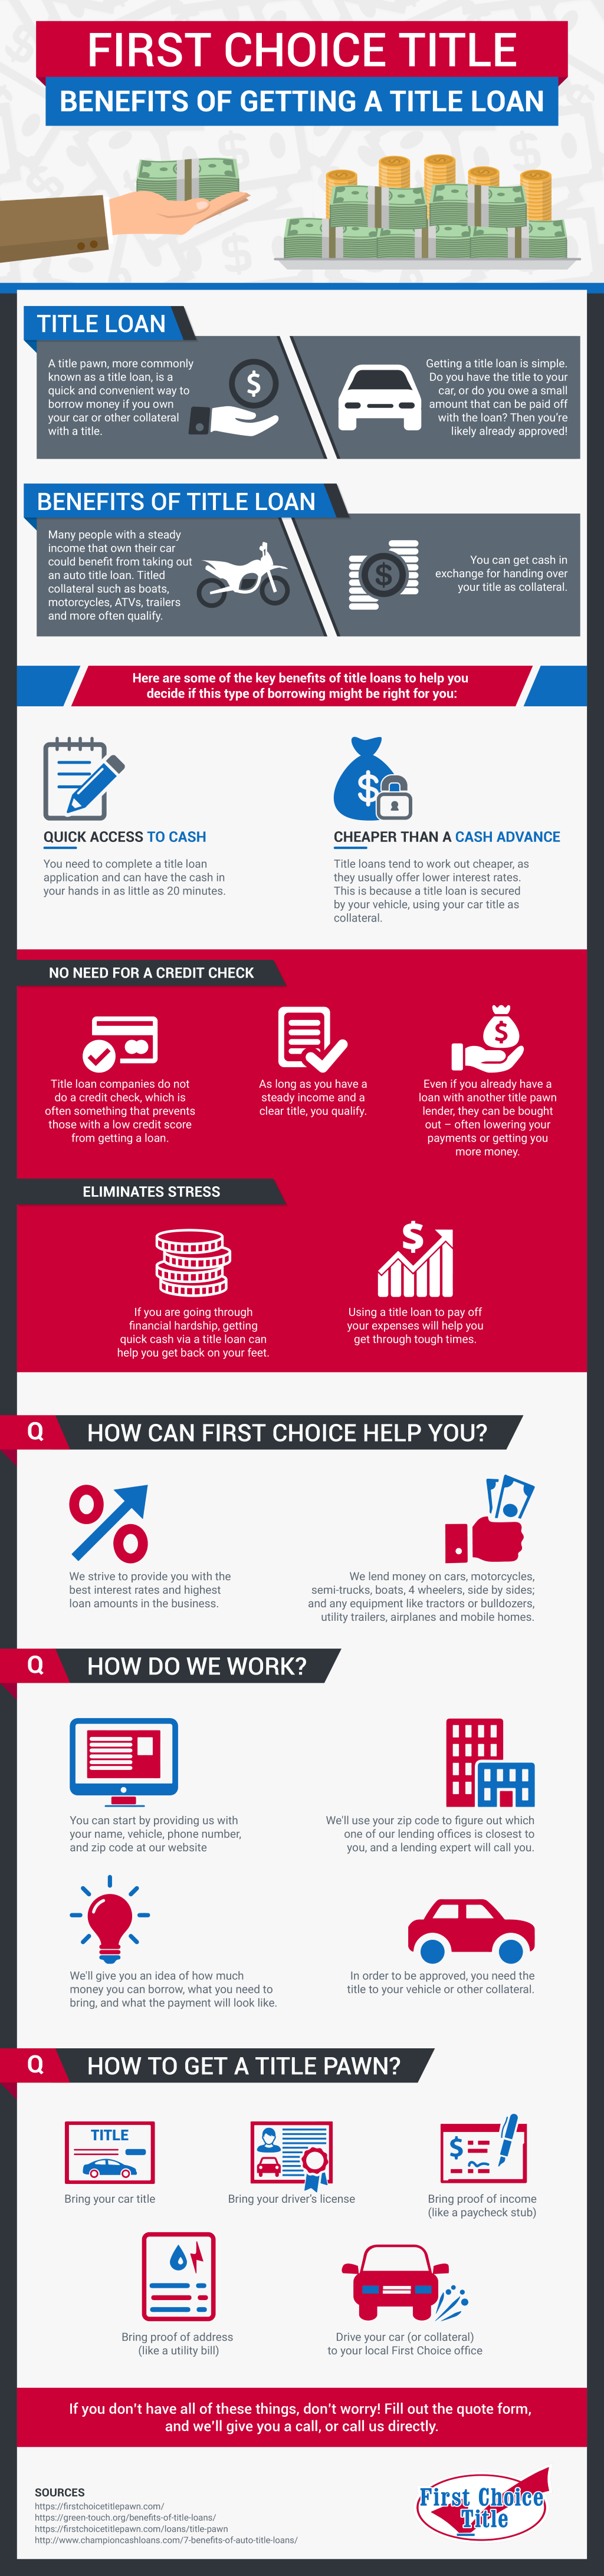 Infographic about the benefits of getting a title loan